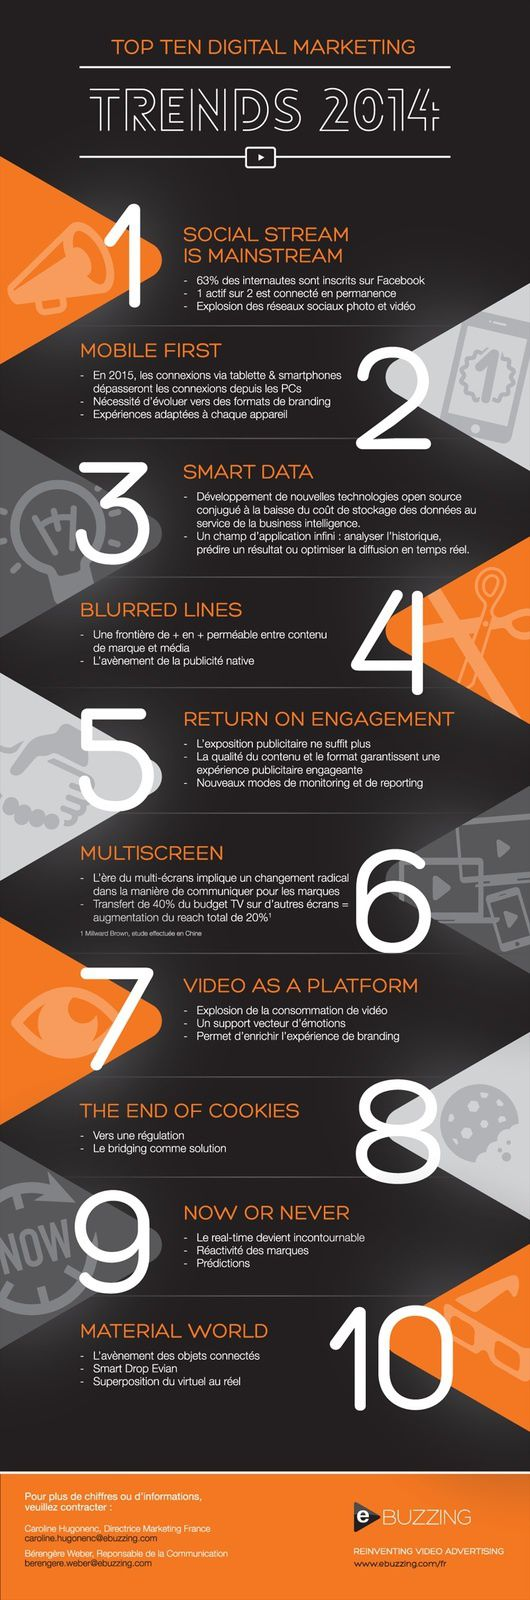 Les 10 tendances du marketing digital en 2014